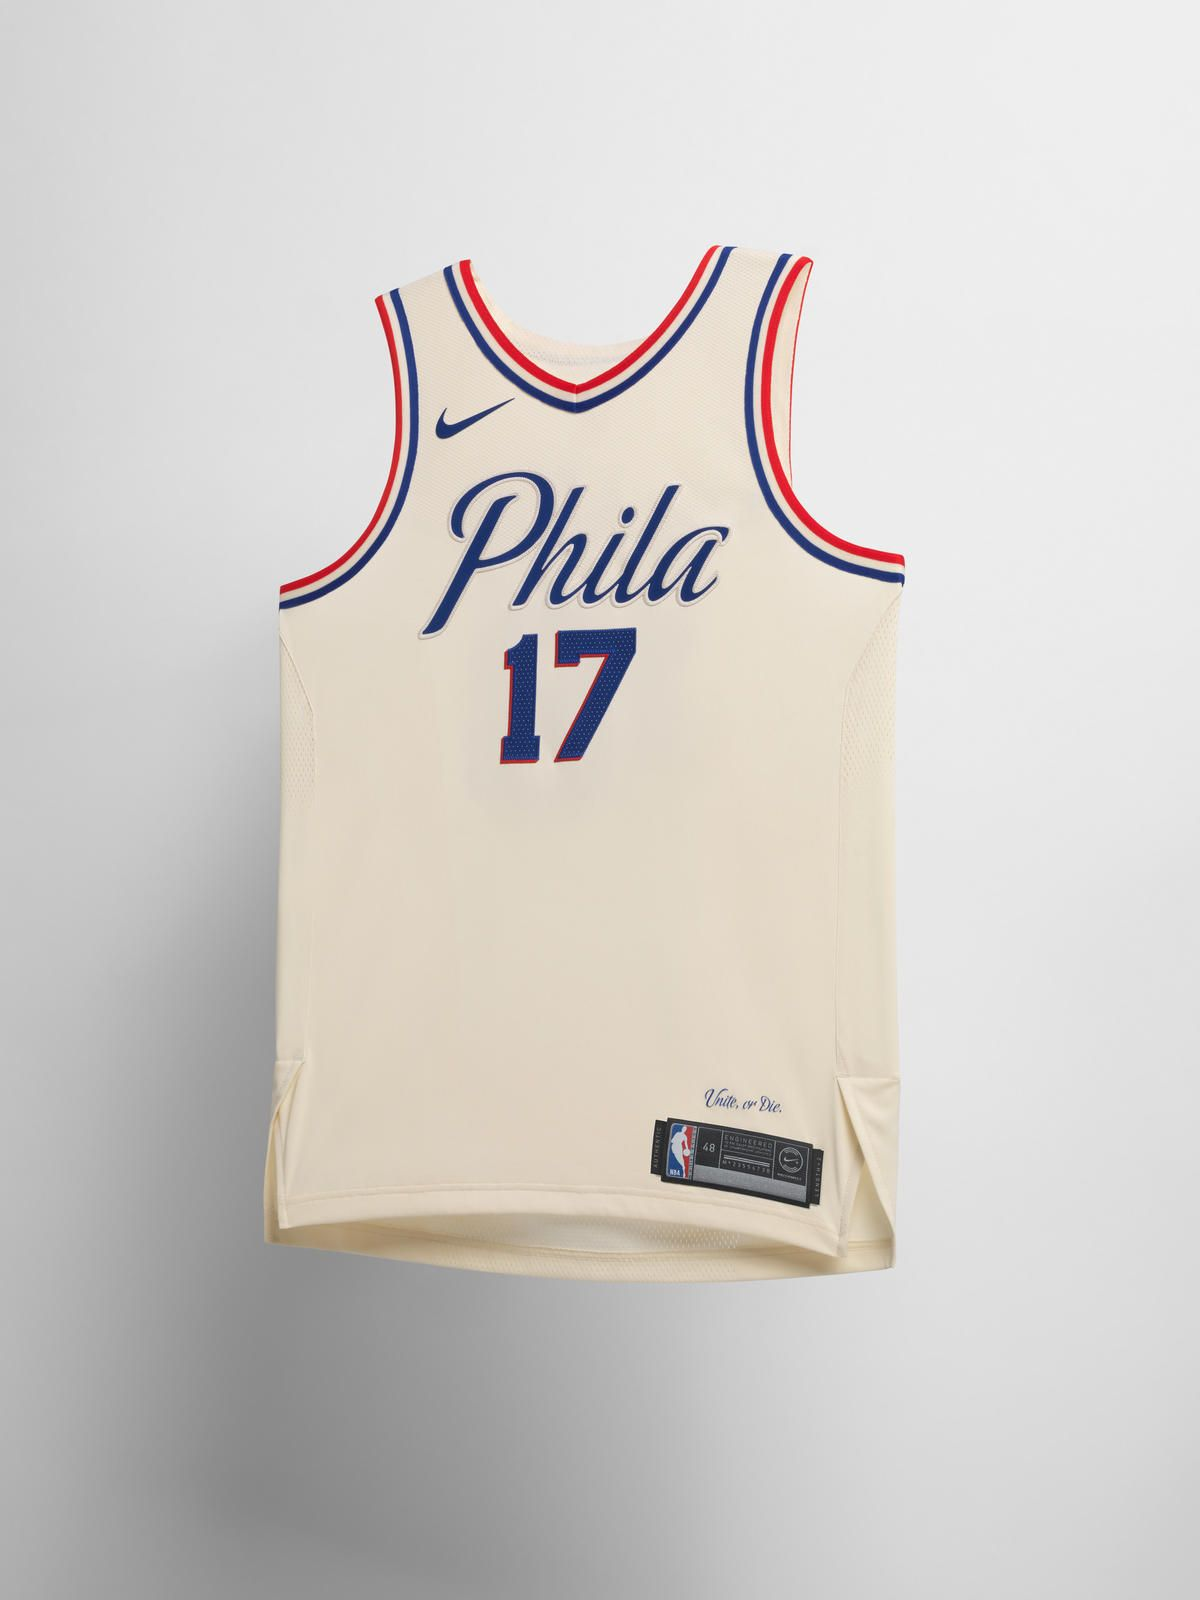 36a754515d0 Nike NBA City Edition Uniform | Apparel Design | Nike nba jerseys ...